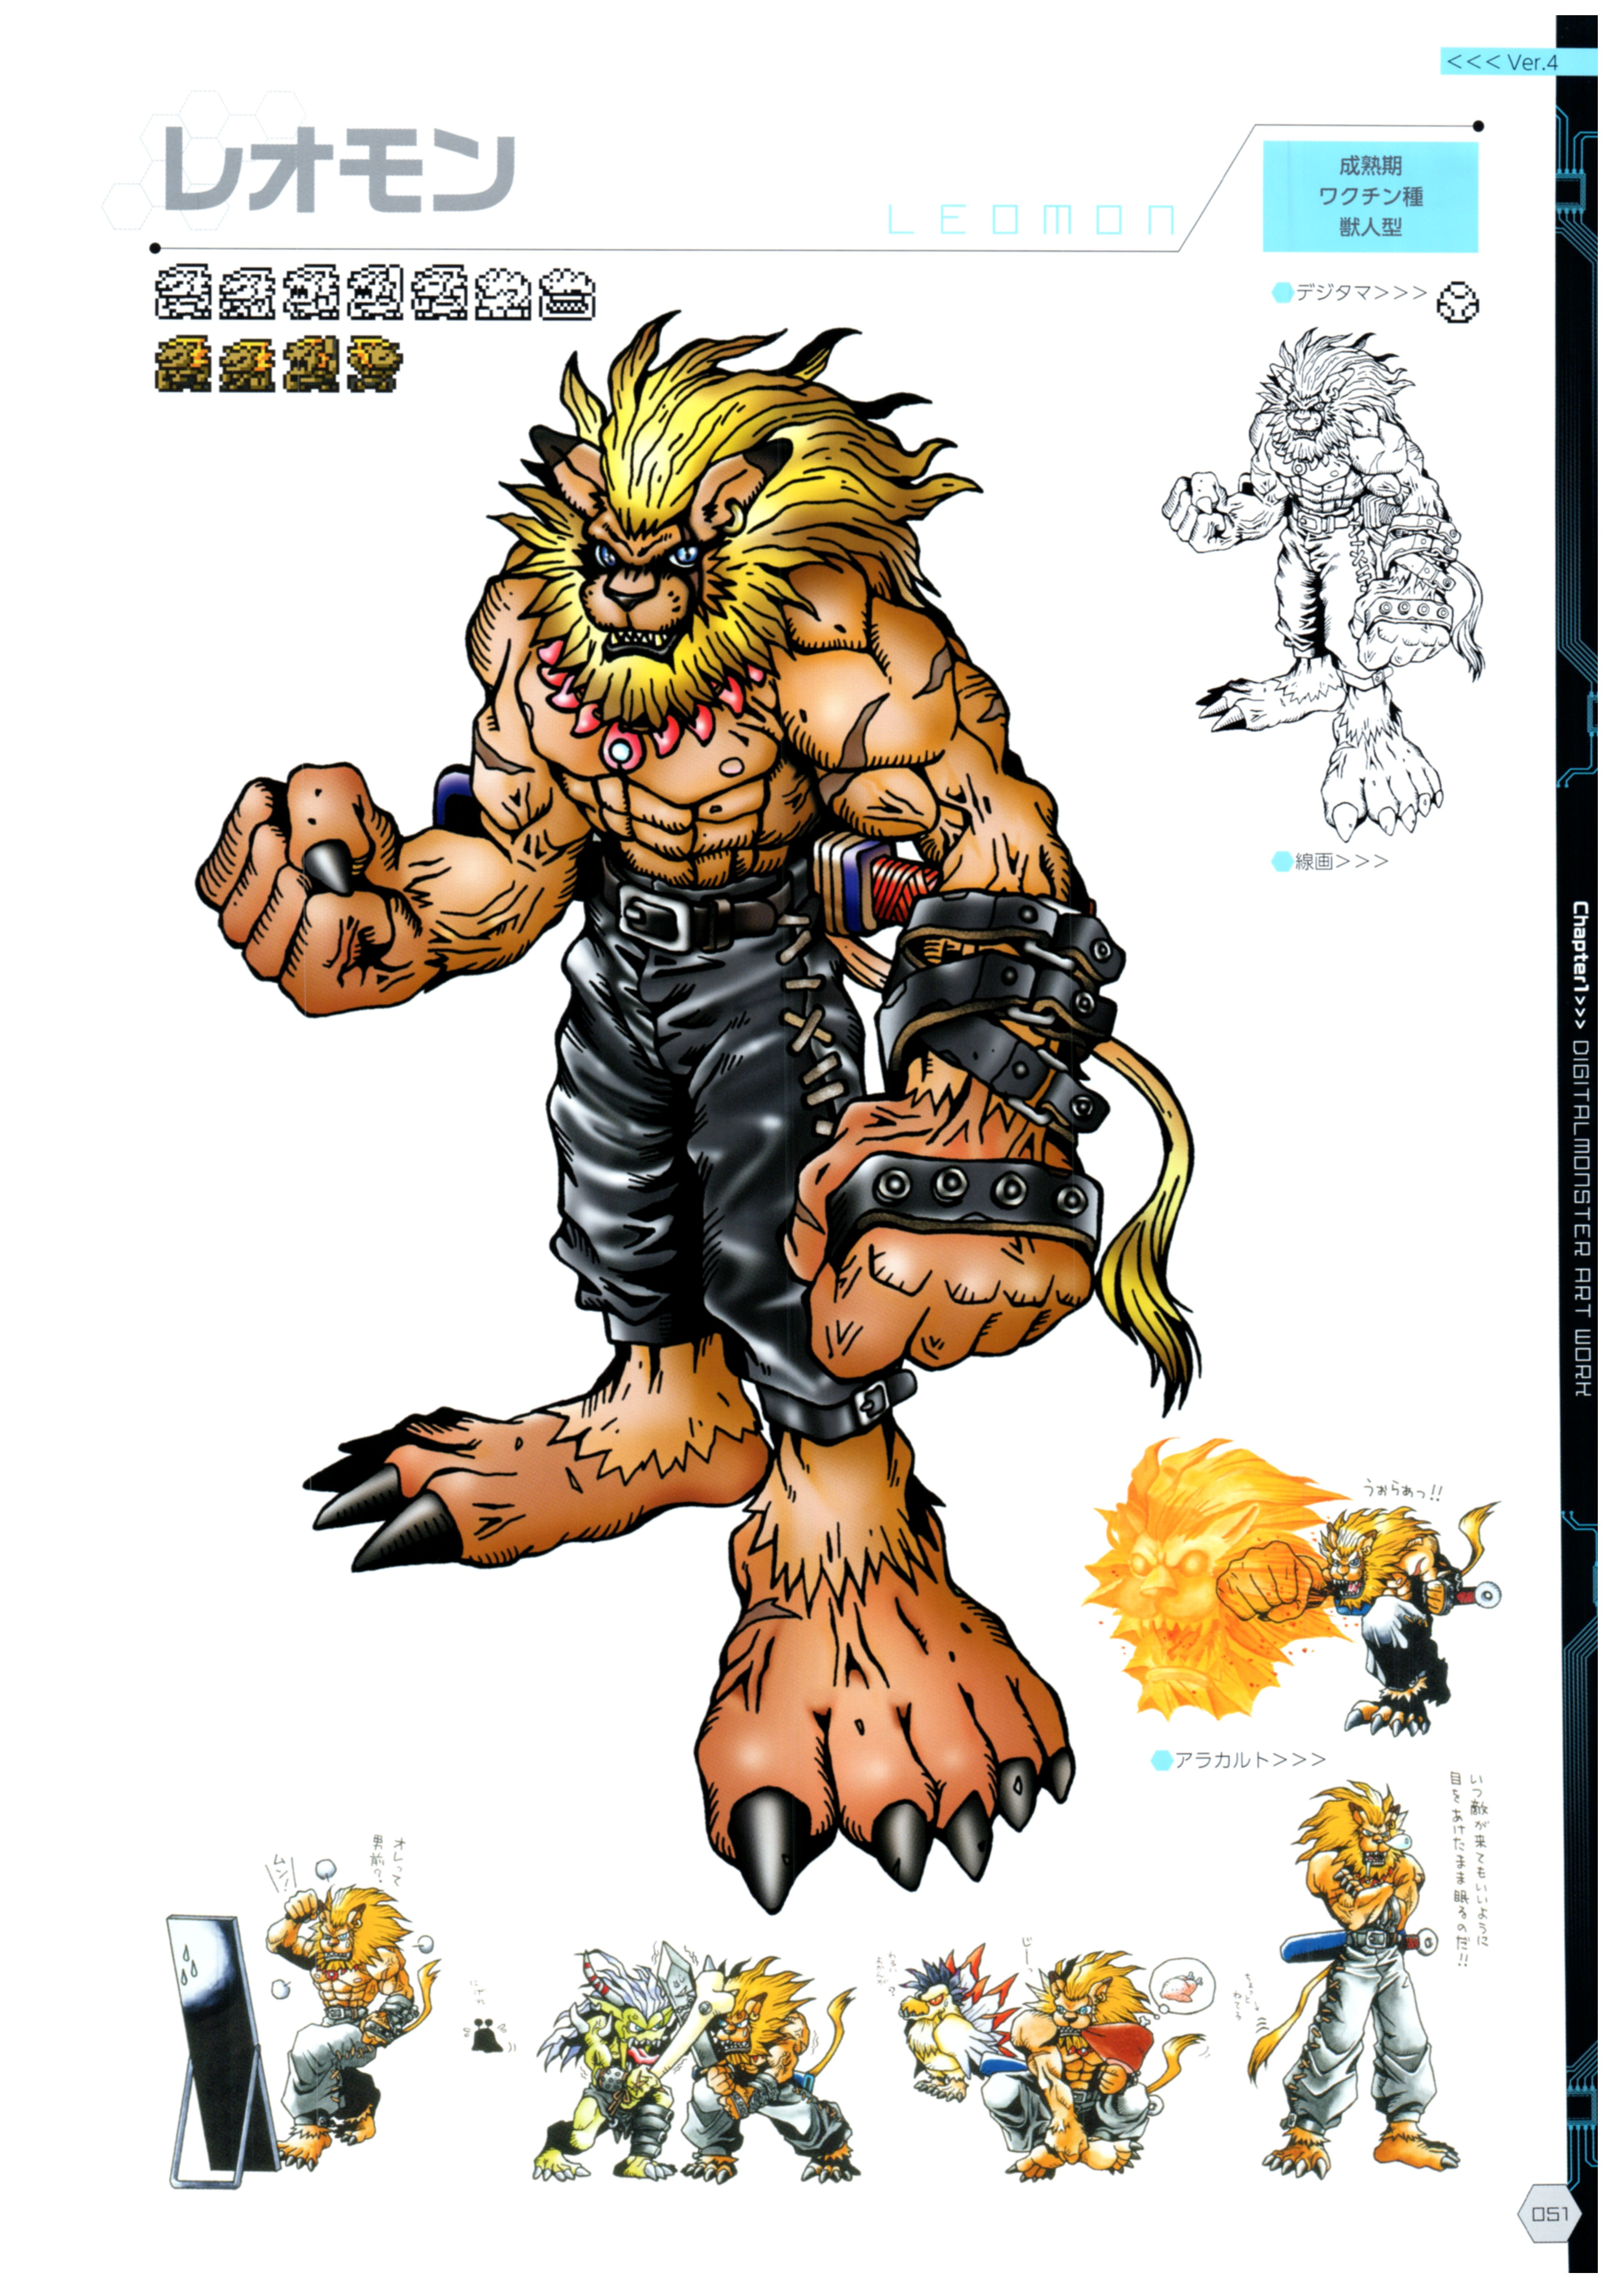 Digimon 20th Anniversary Digital Monster Art Book Ver 1 5 20th Breakdown Scans With The Will Digimon Forums Wiki sprites models textures sounds login. with the will digimon